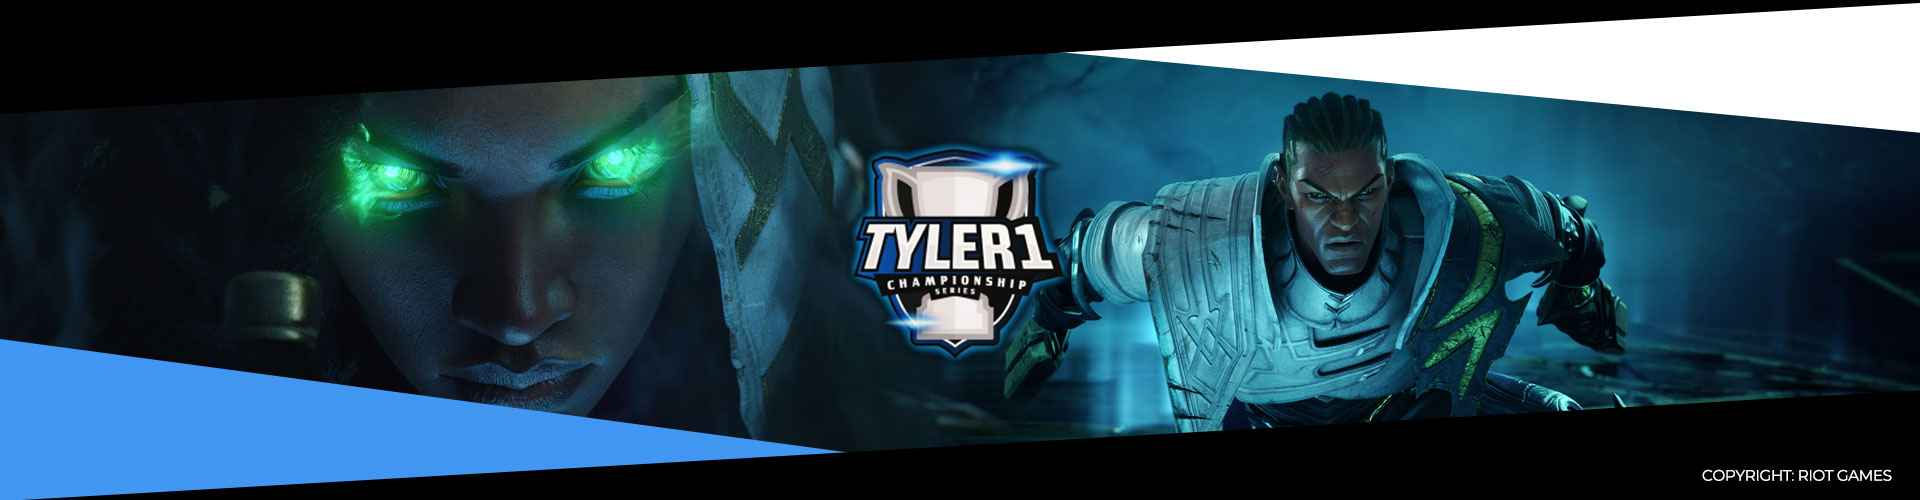 Tyler1 Championship Day One Recap